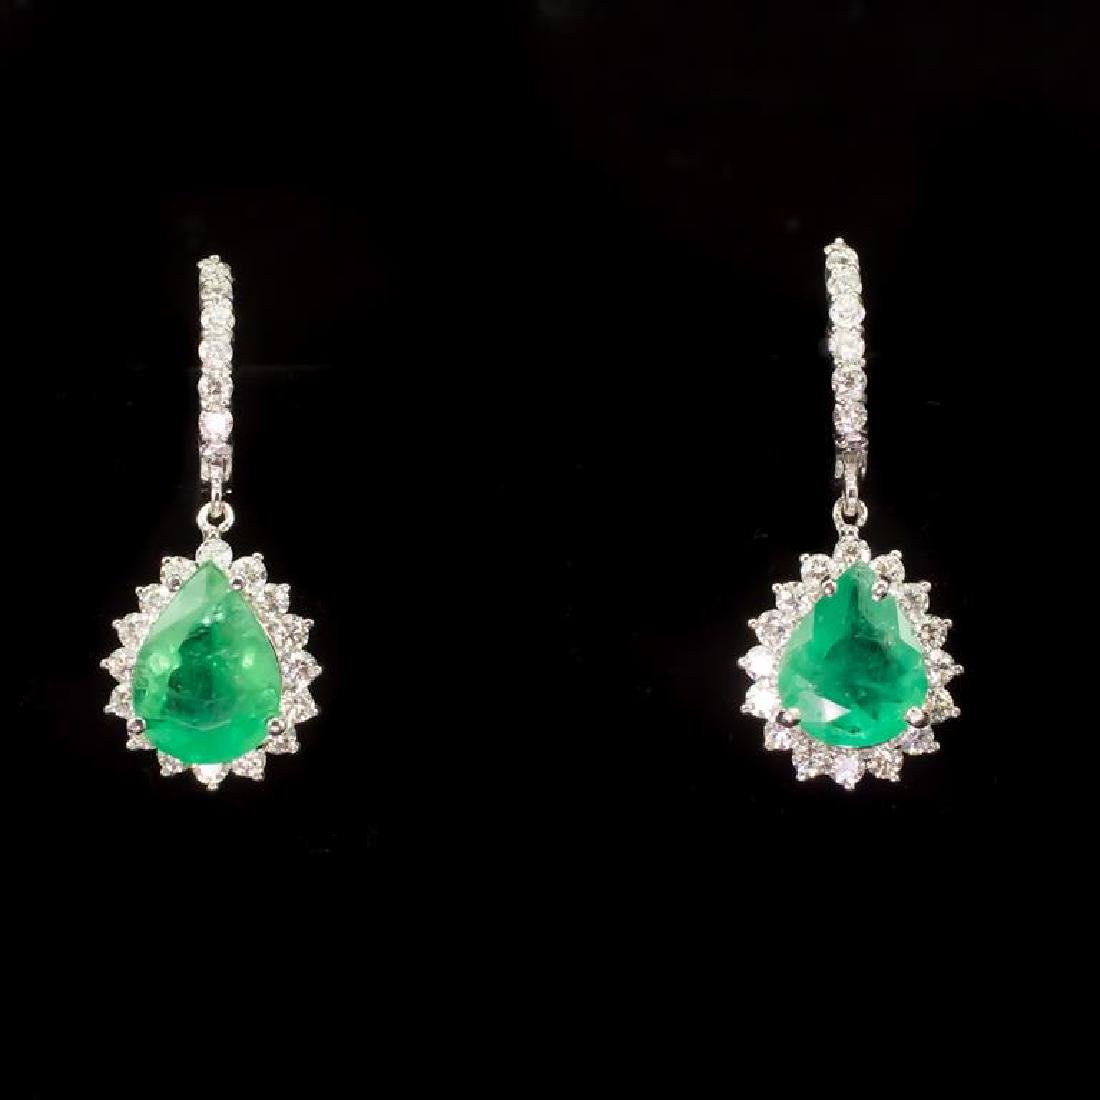 14K Gold 4.86ct Emerald 1.79ct Diamond Earrings